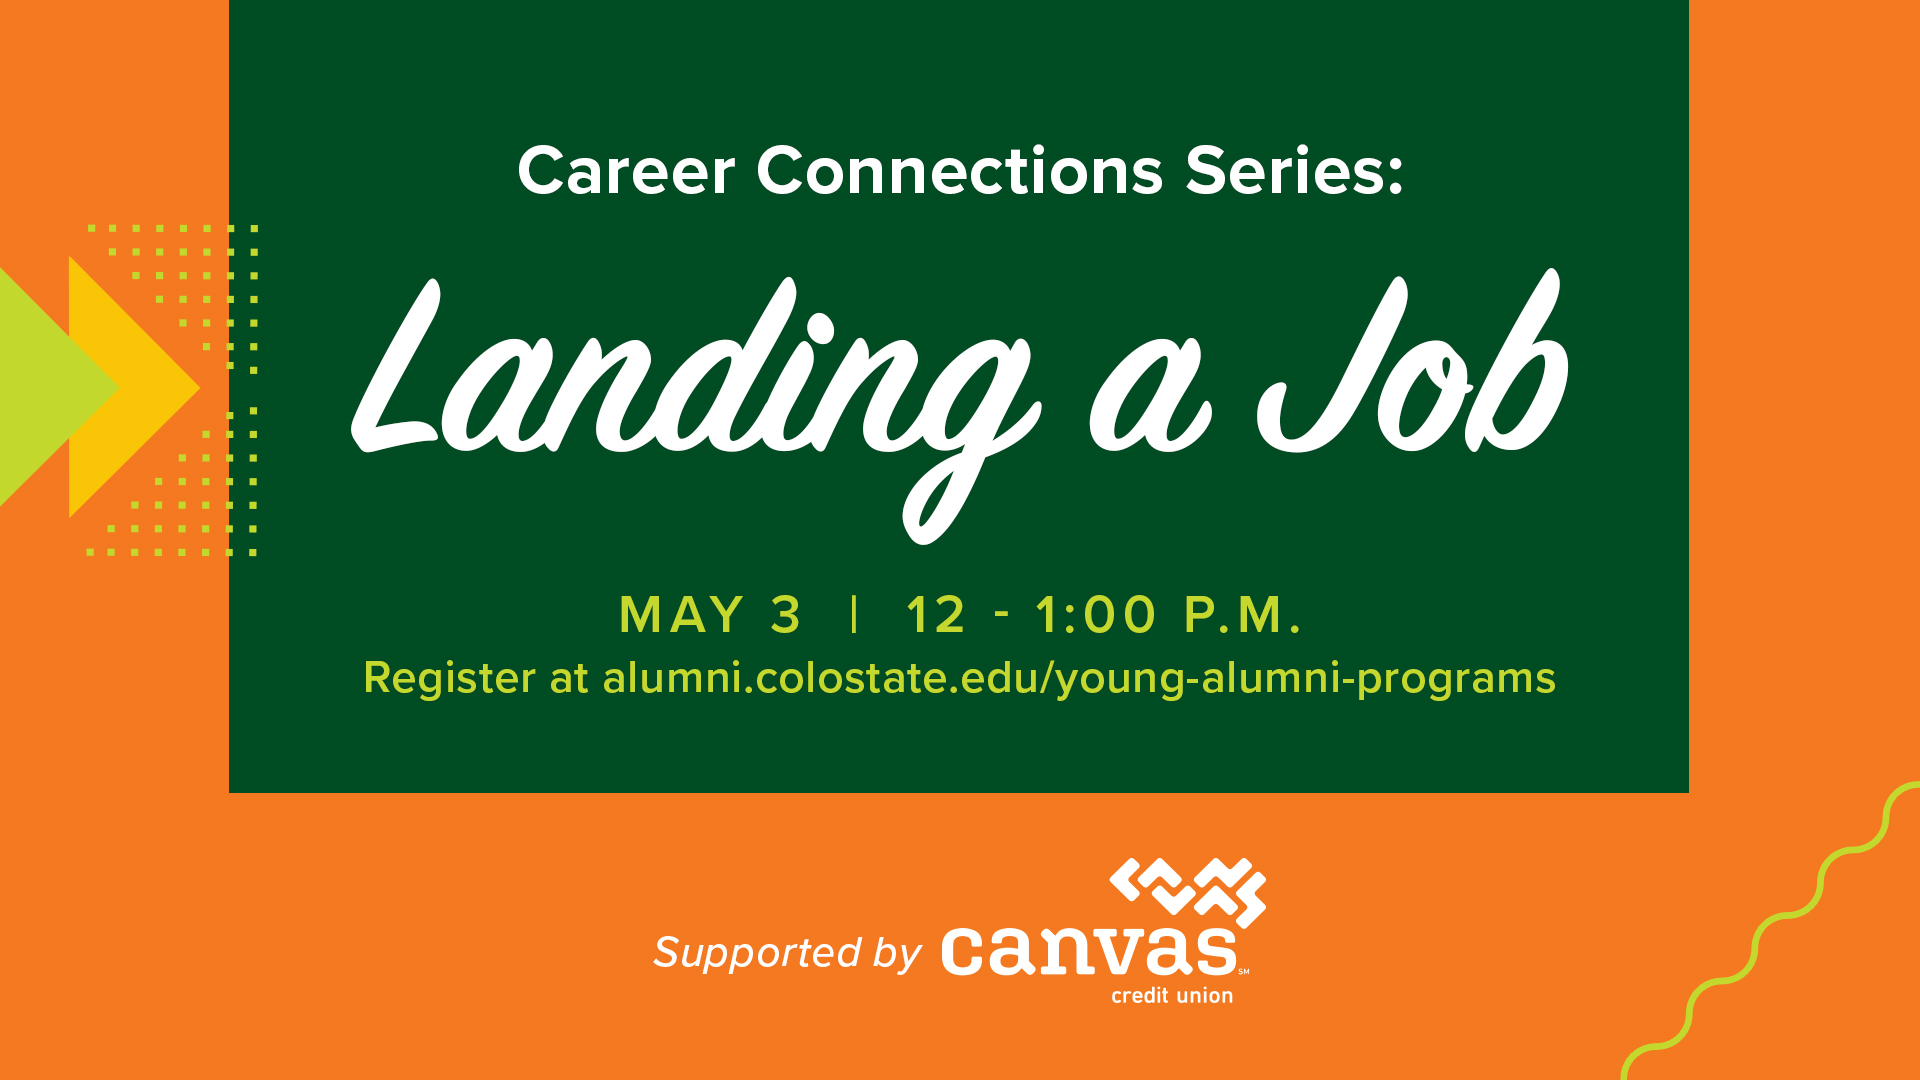 Image for Career Connections Series: Landing a Job webinar